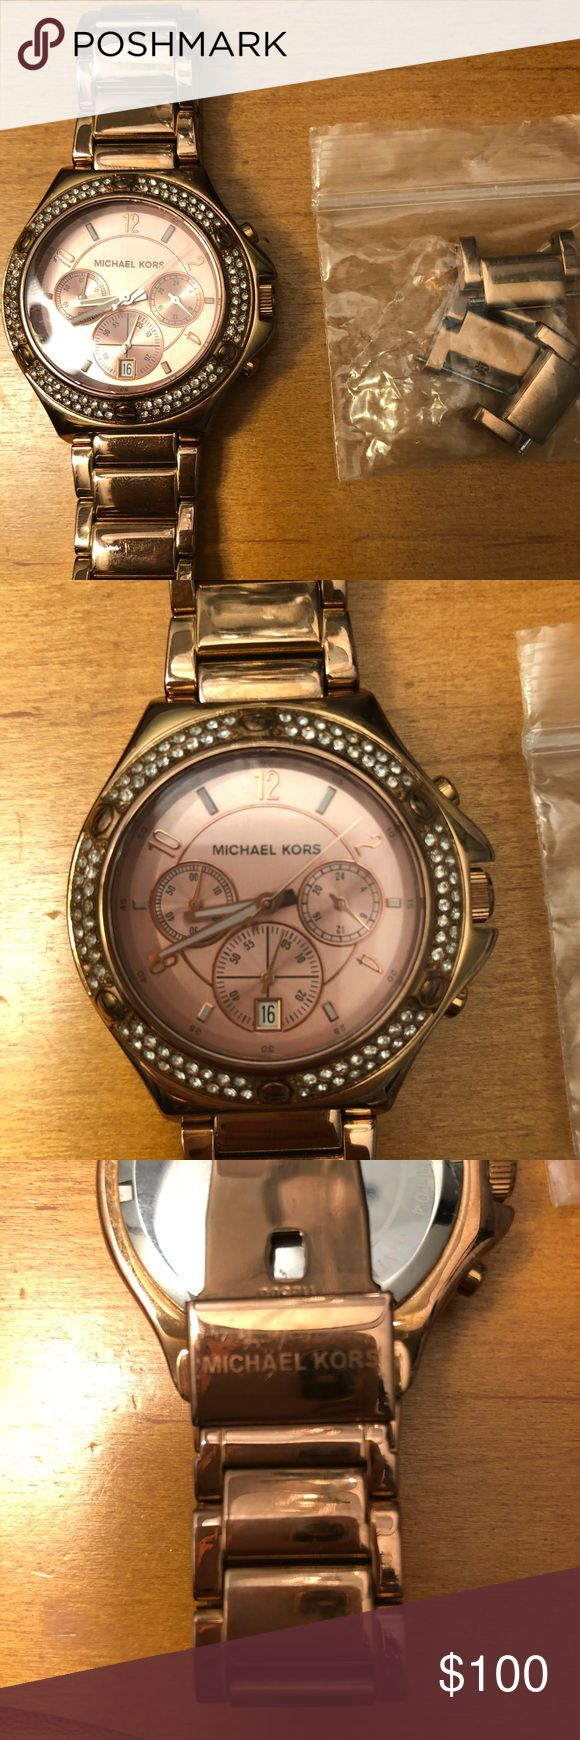 Michael Kors Rose Gold Rhinestone Watch Beautiful rose gold slightly oversized watch by Michael Kors with clear pavé rhinestone accents.   Approximately 38 mm face.   Great condition! Gently used with some minor scratches on wrist band from normal wear (pictured).   Some links have been removed but are included with pins for resizing. Battery will need to be replaced.  If you are interested or have any questions, please ask!  All reasonable offers welcome! 😊 Michael Kors Accessories Watches